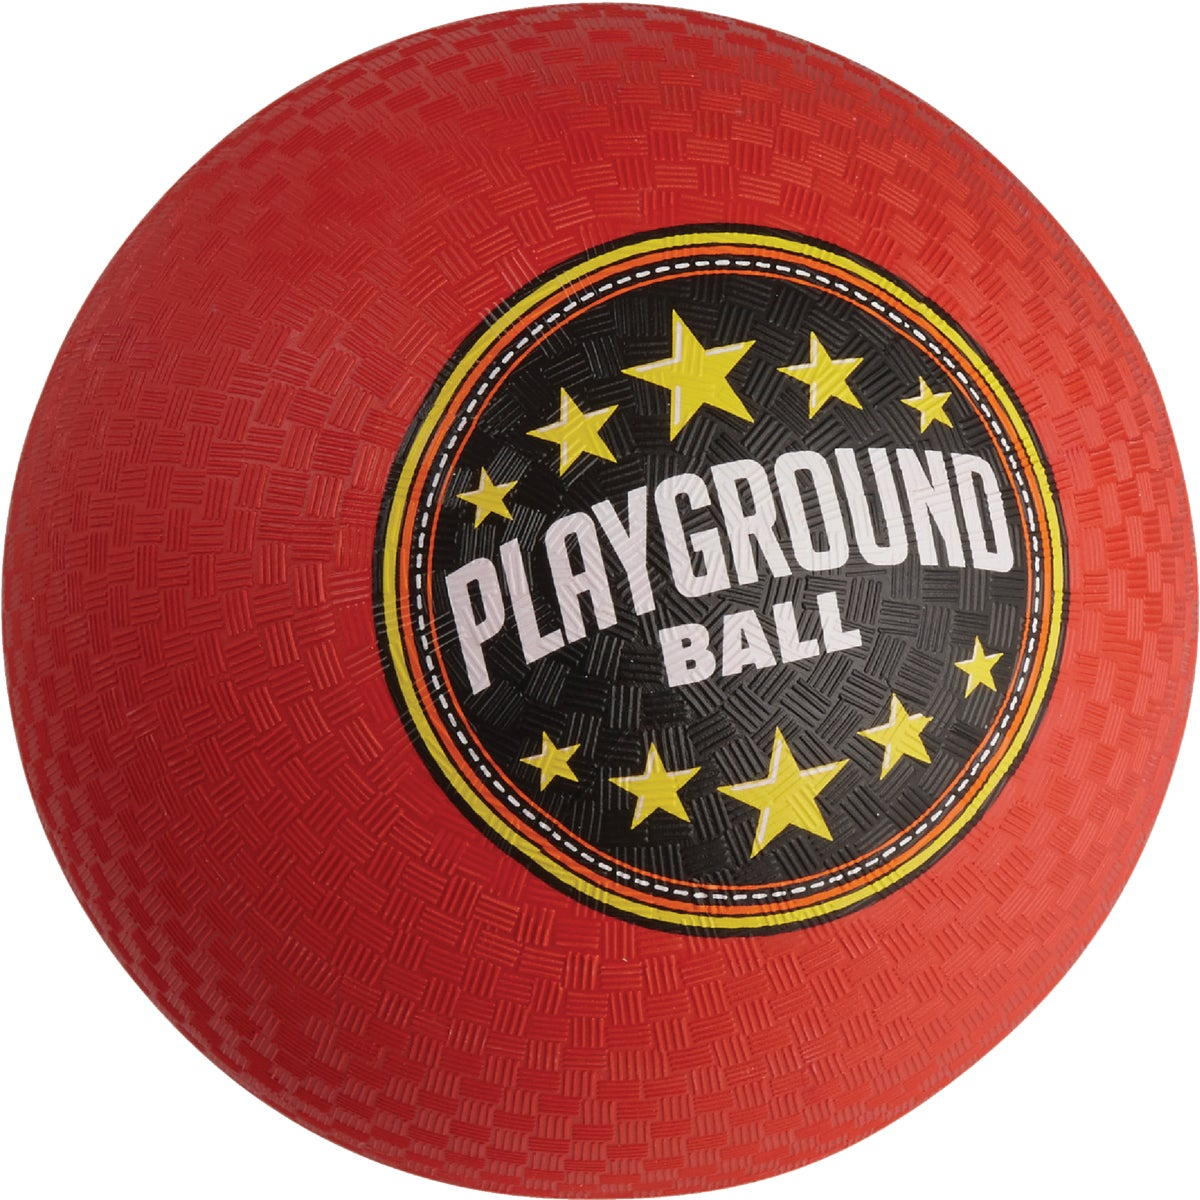 "8.5"" PLAYGROUND BALL - 6325 by Franklin Sports"